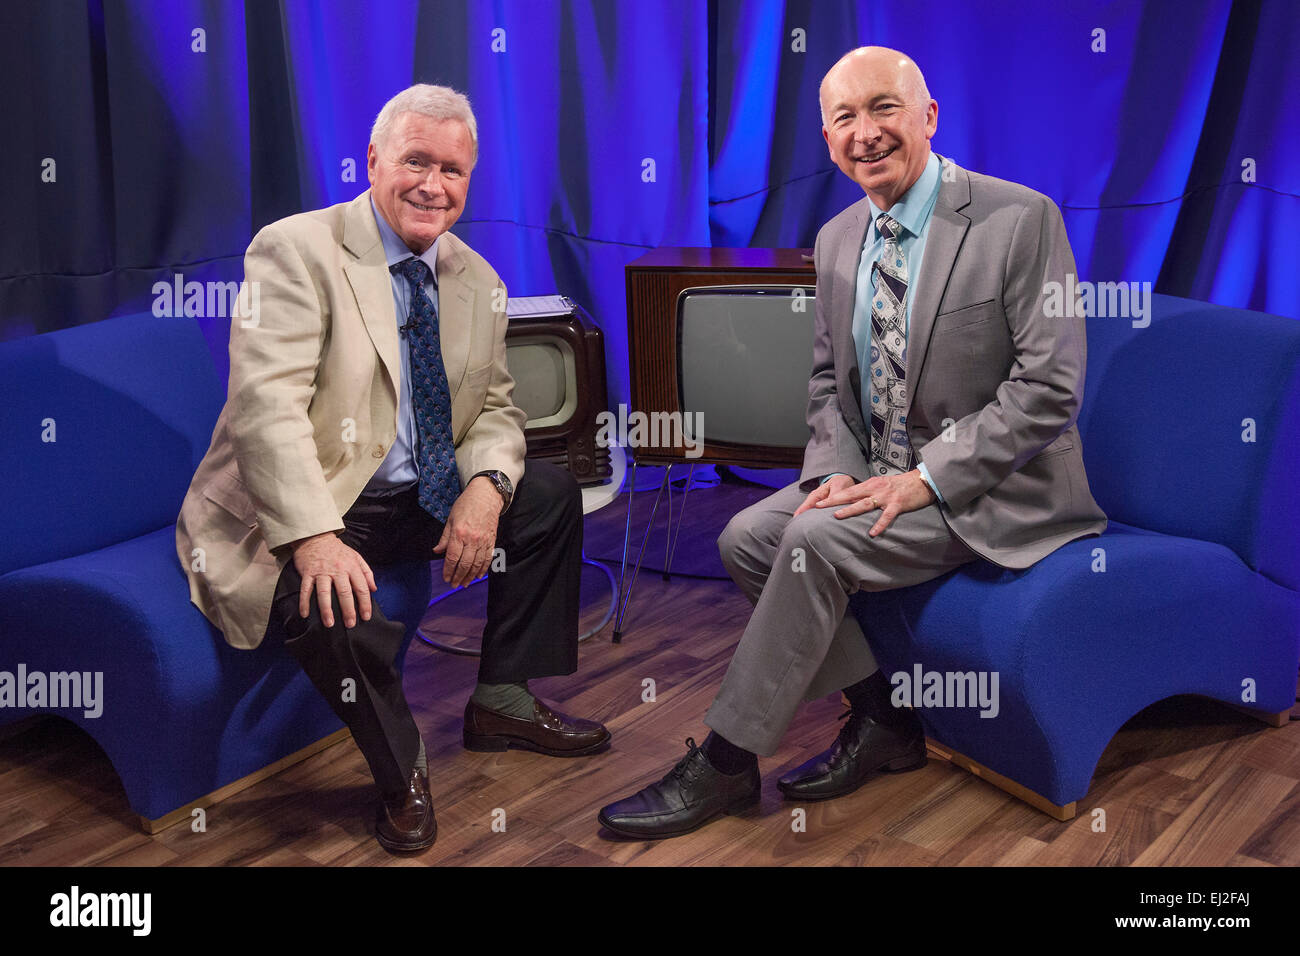 Walsall, West Midlands, UK. 20 March 2015. David Hamilton (L) with comedy writer Colin Edmonds at a recording of - Stock Image